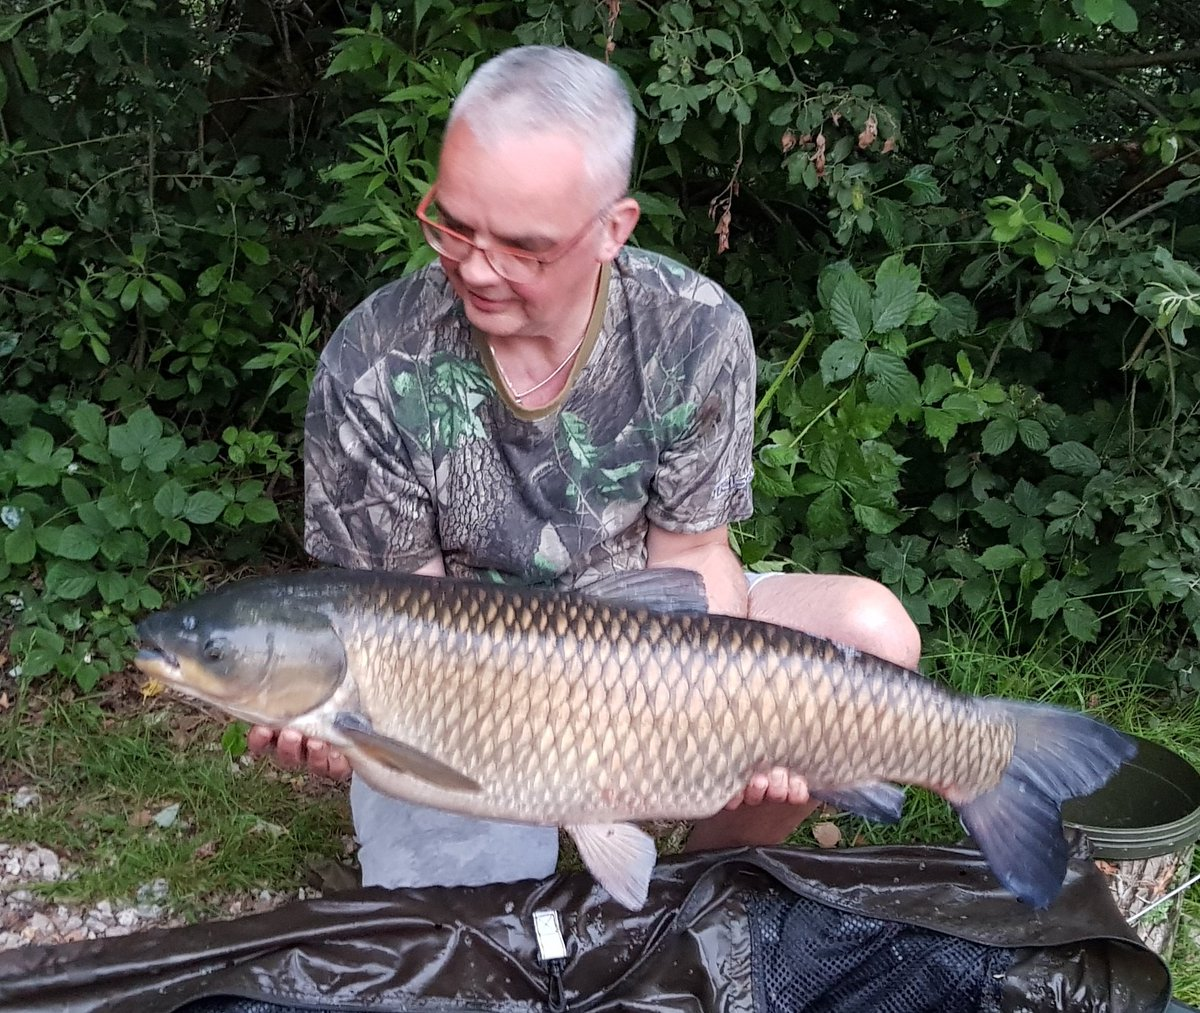 PB smashed!!! 35lb of Belgian Grass Carp, never caught a